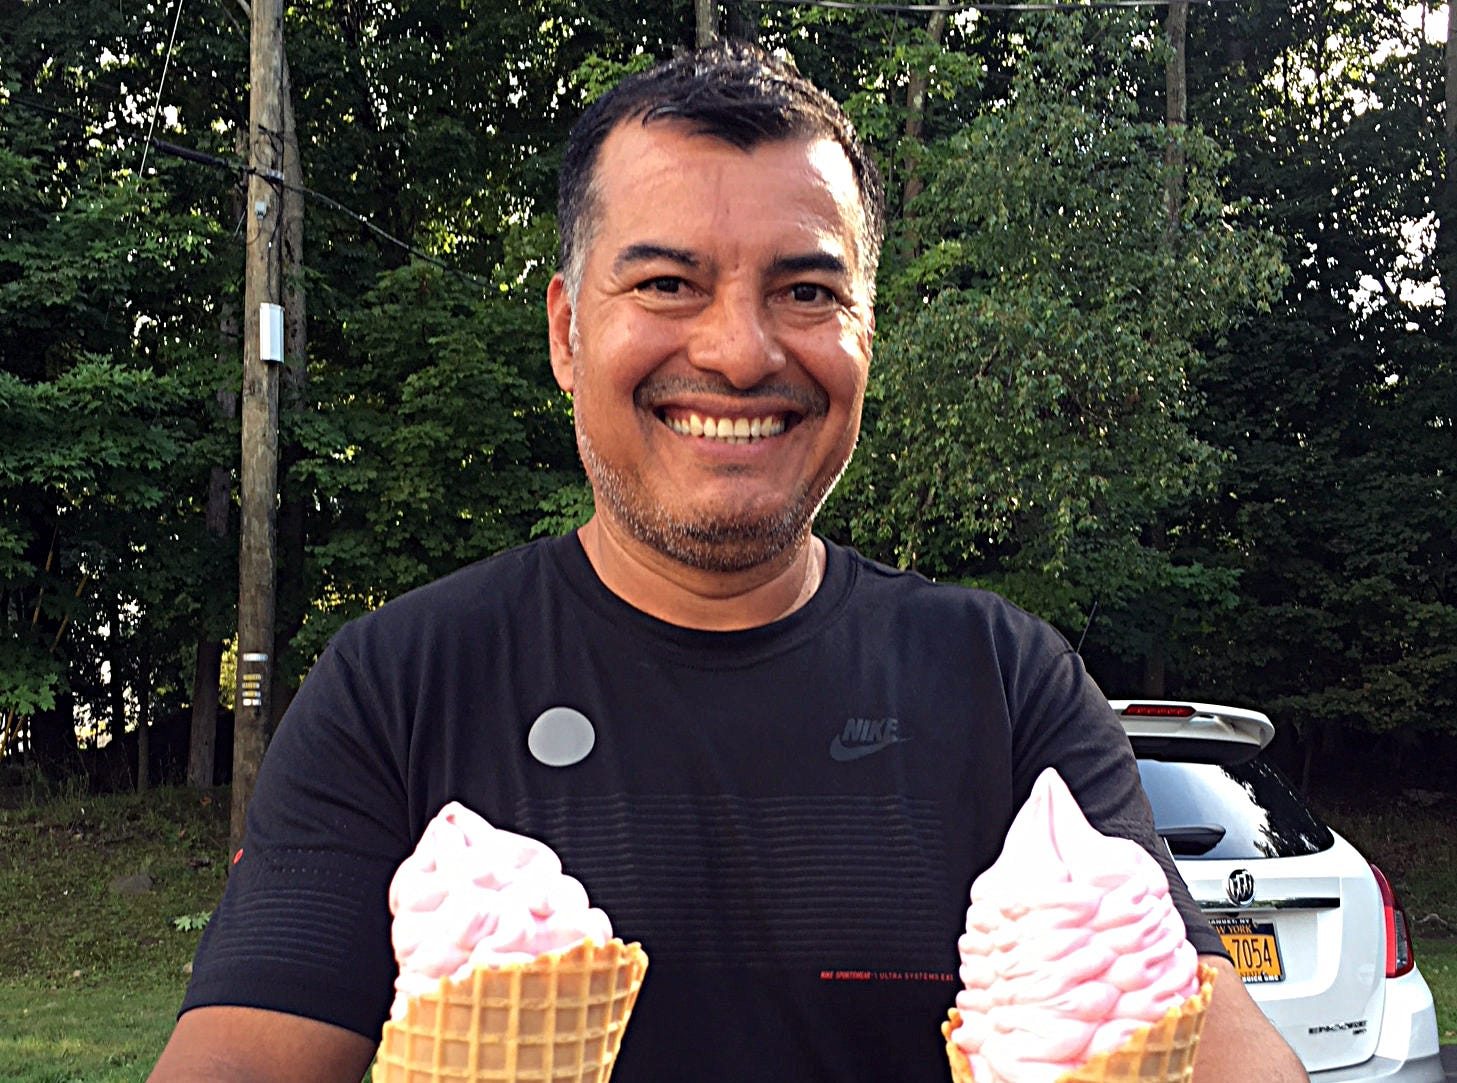 """No, they are not both for me... I wish it was. It's actually for my co-worker."" states Mateo Alvarez after purchasing two strawberry ice cream treats from Hoyer's ice cream stand in West Haverstraw Aug. 8, 2018."